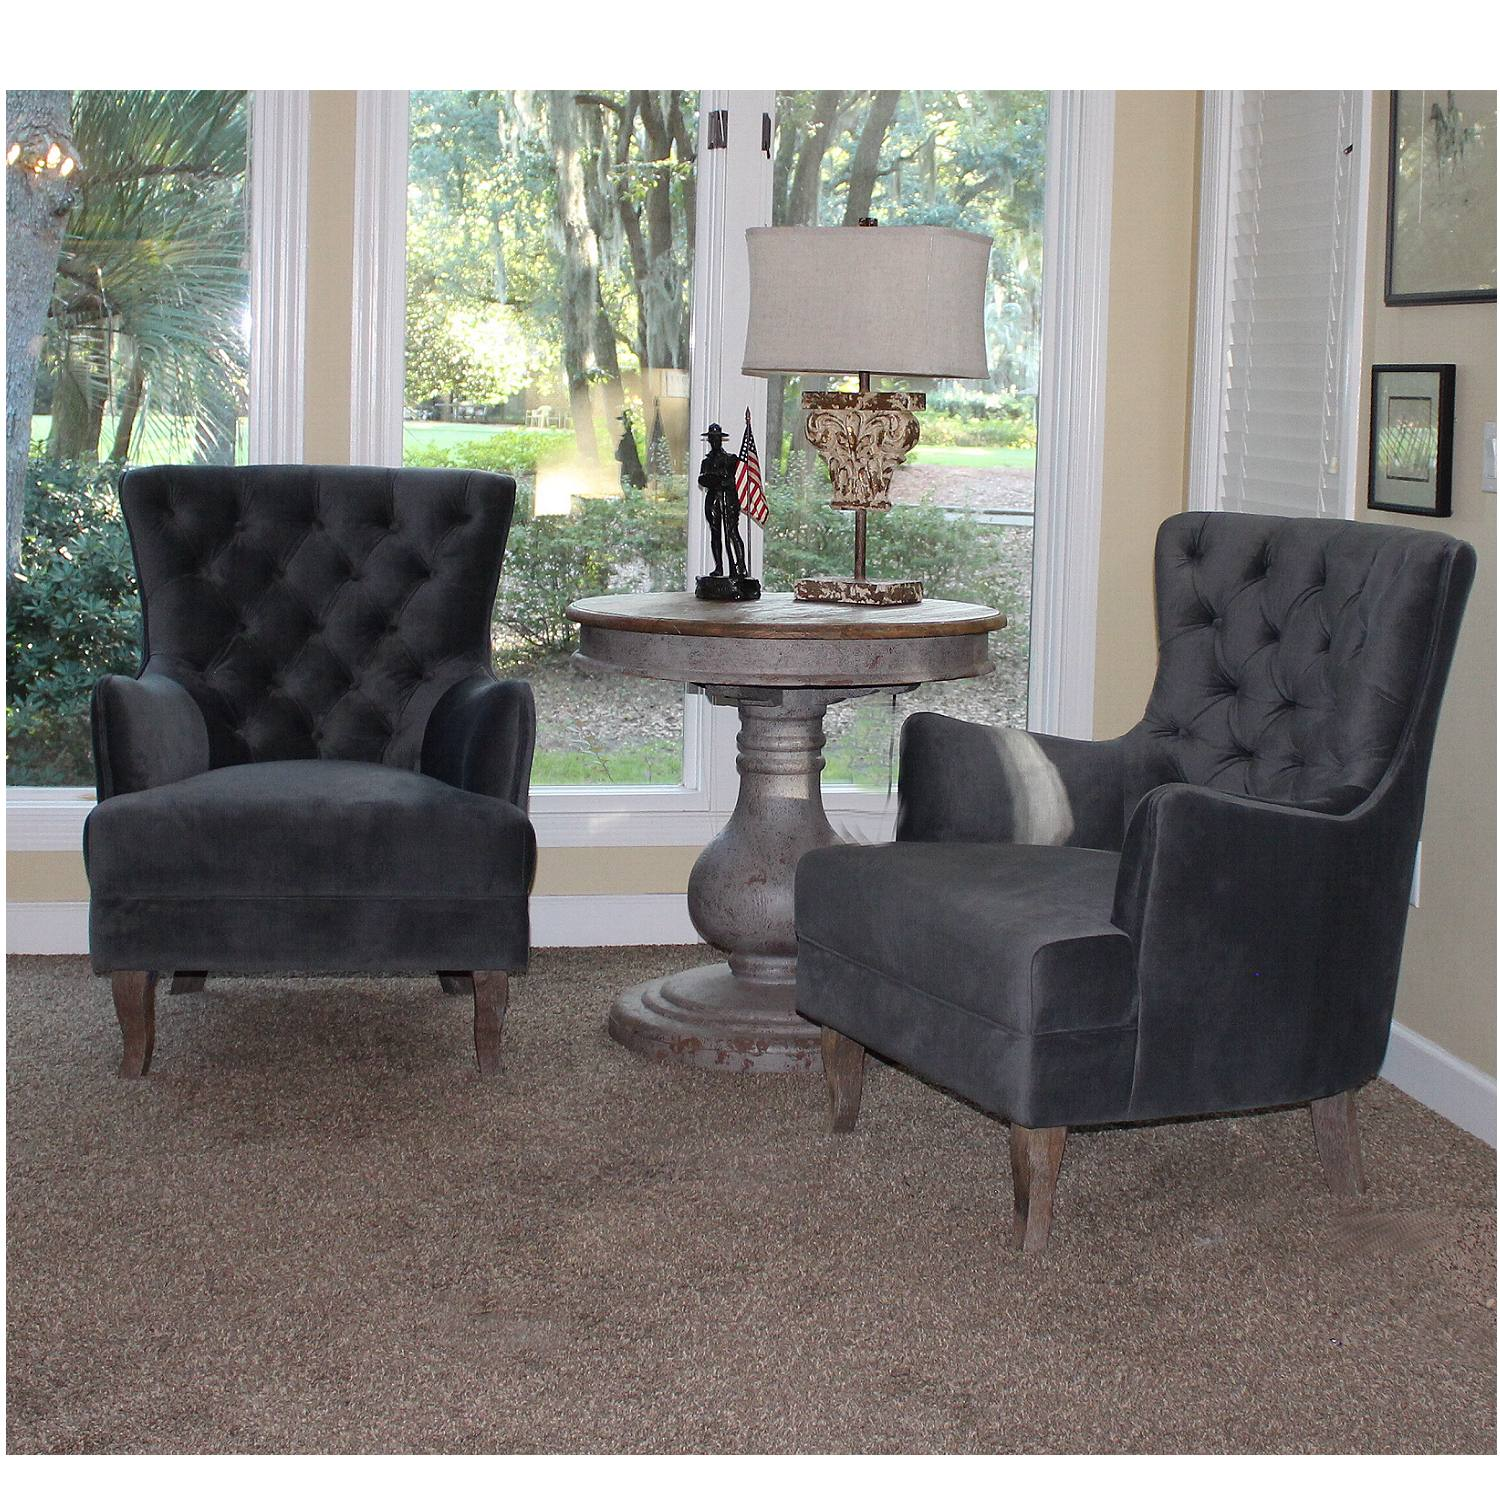 Arm Chairs In Blue Gray Satin Velvet Tufted Living Room Sold As Pair